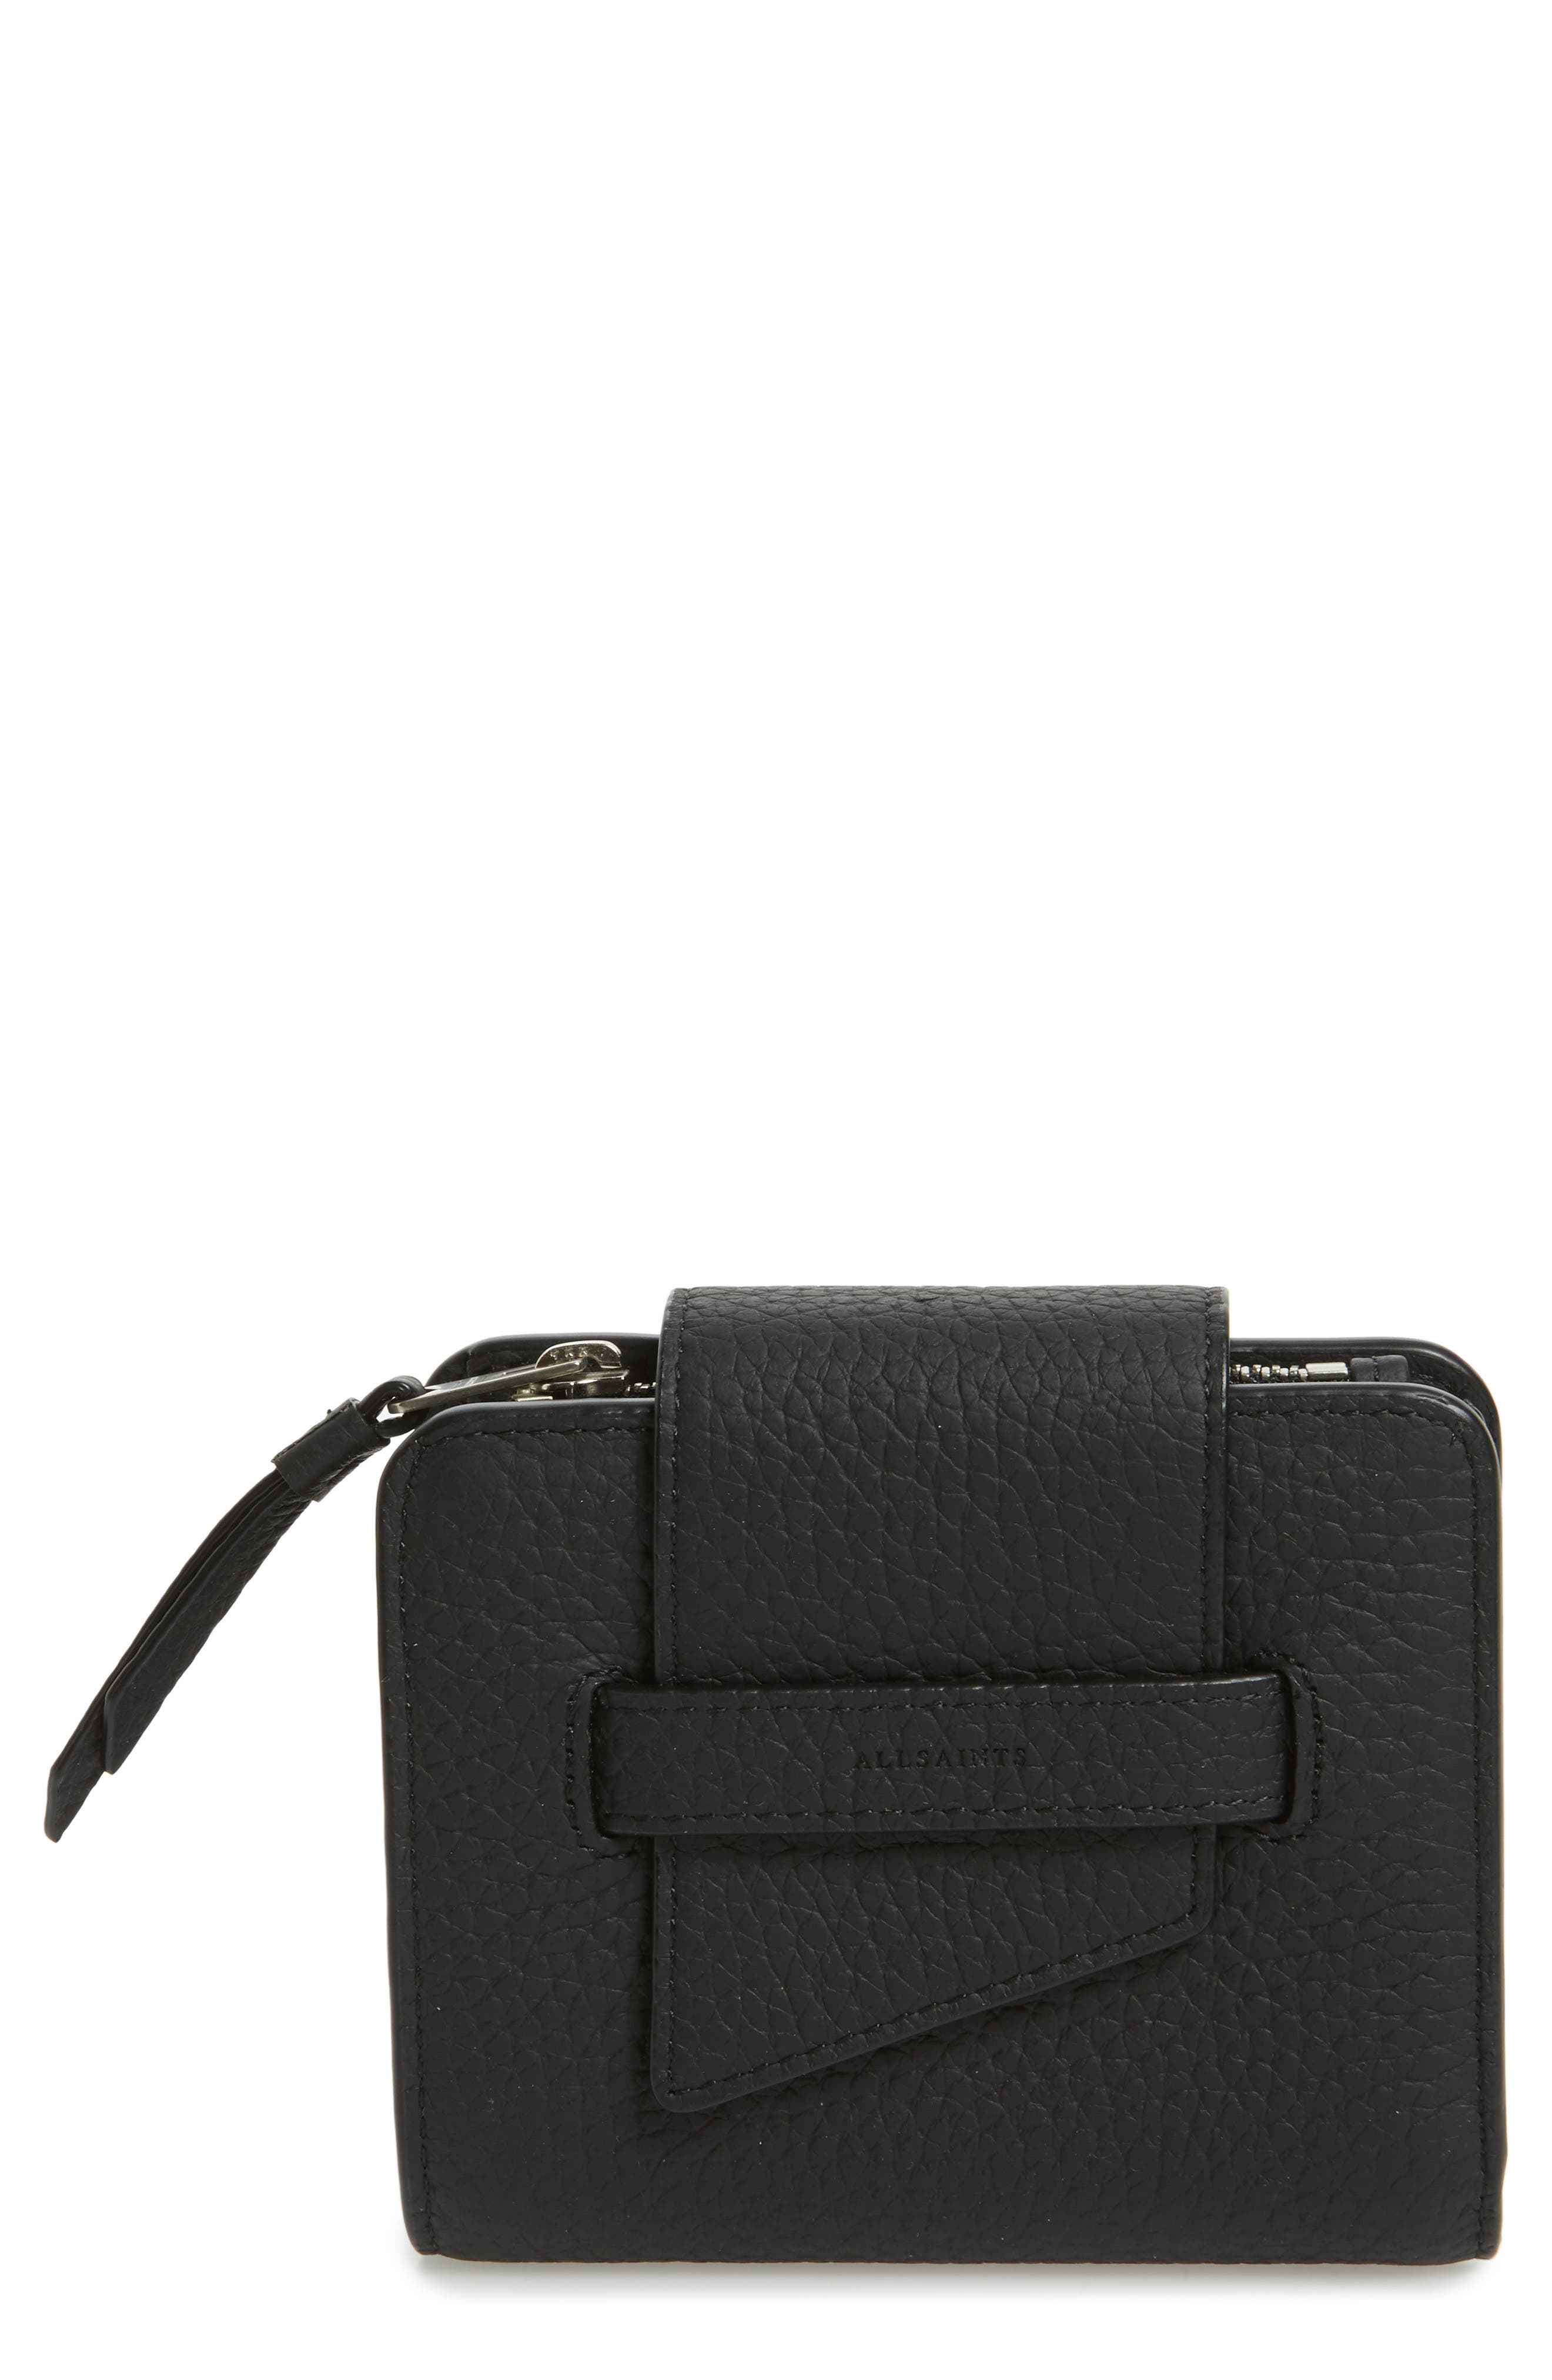 Main Image - ALLSAINTS Small Ray Leather Wallet